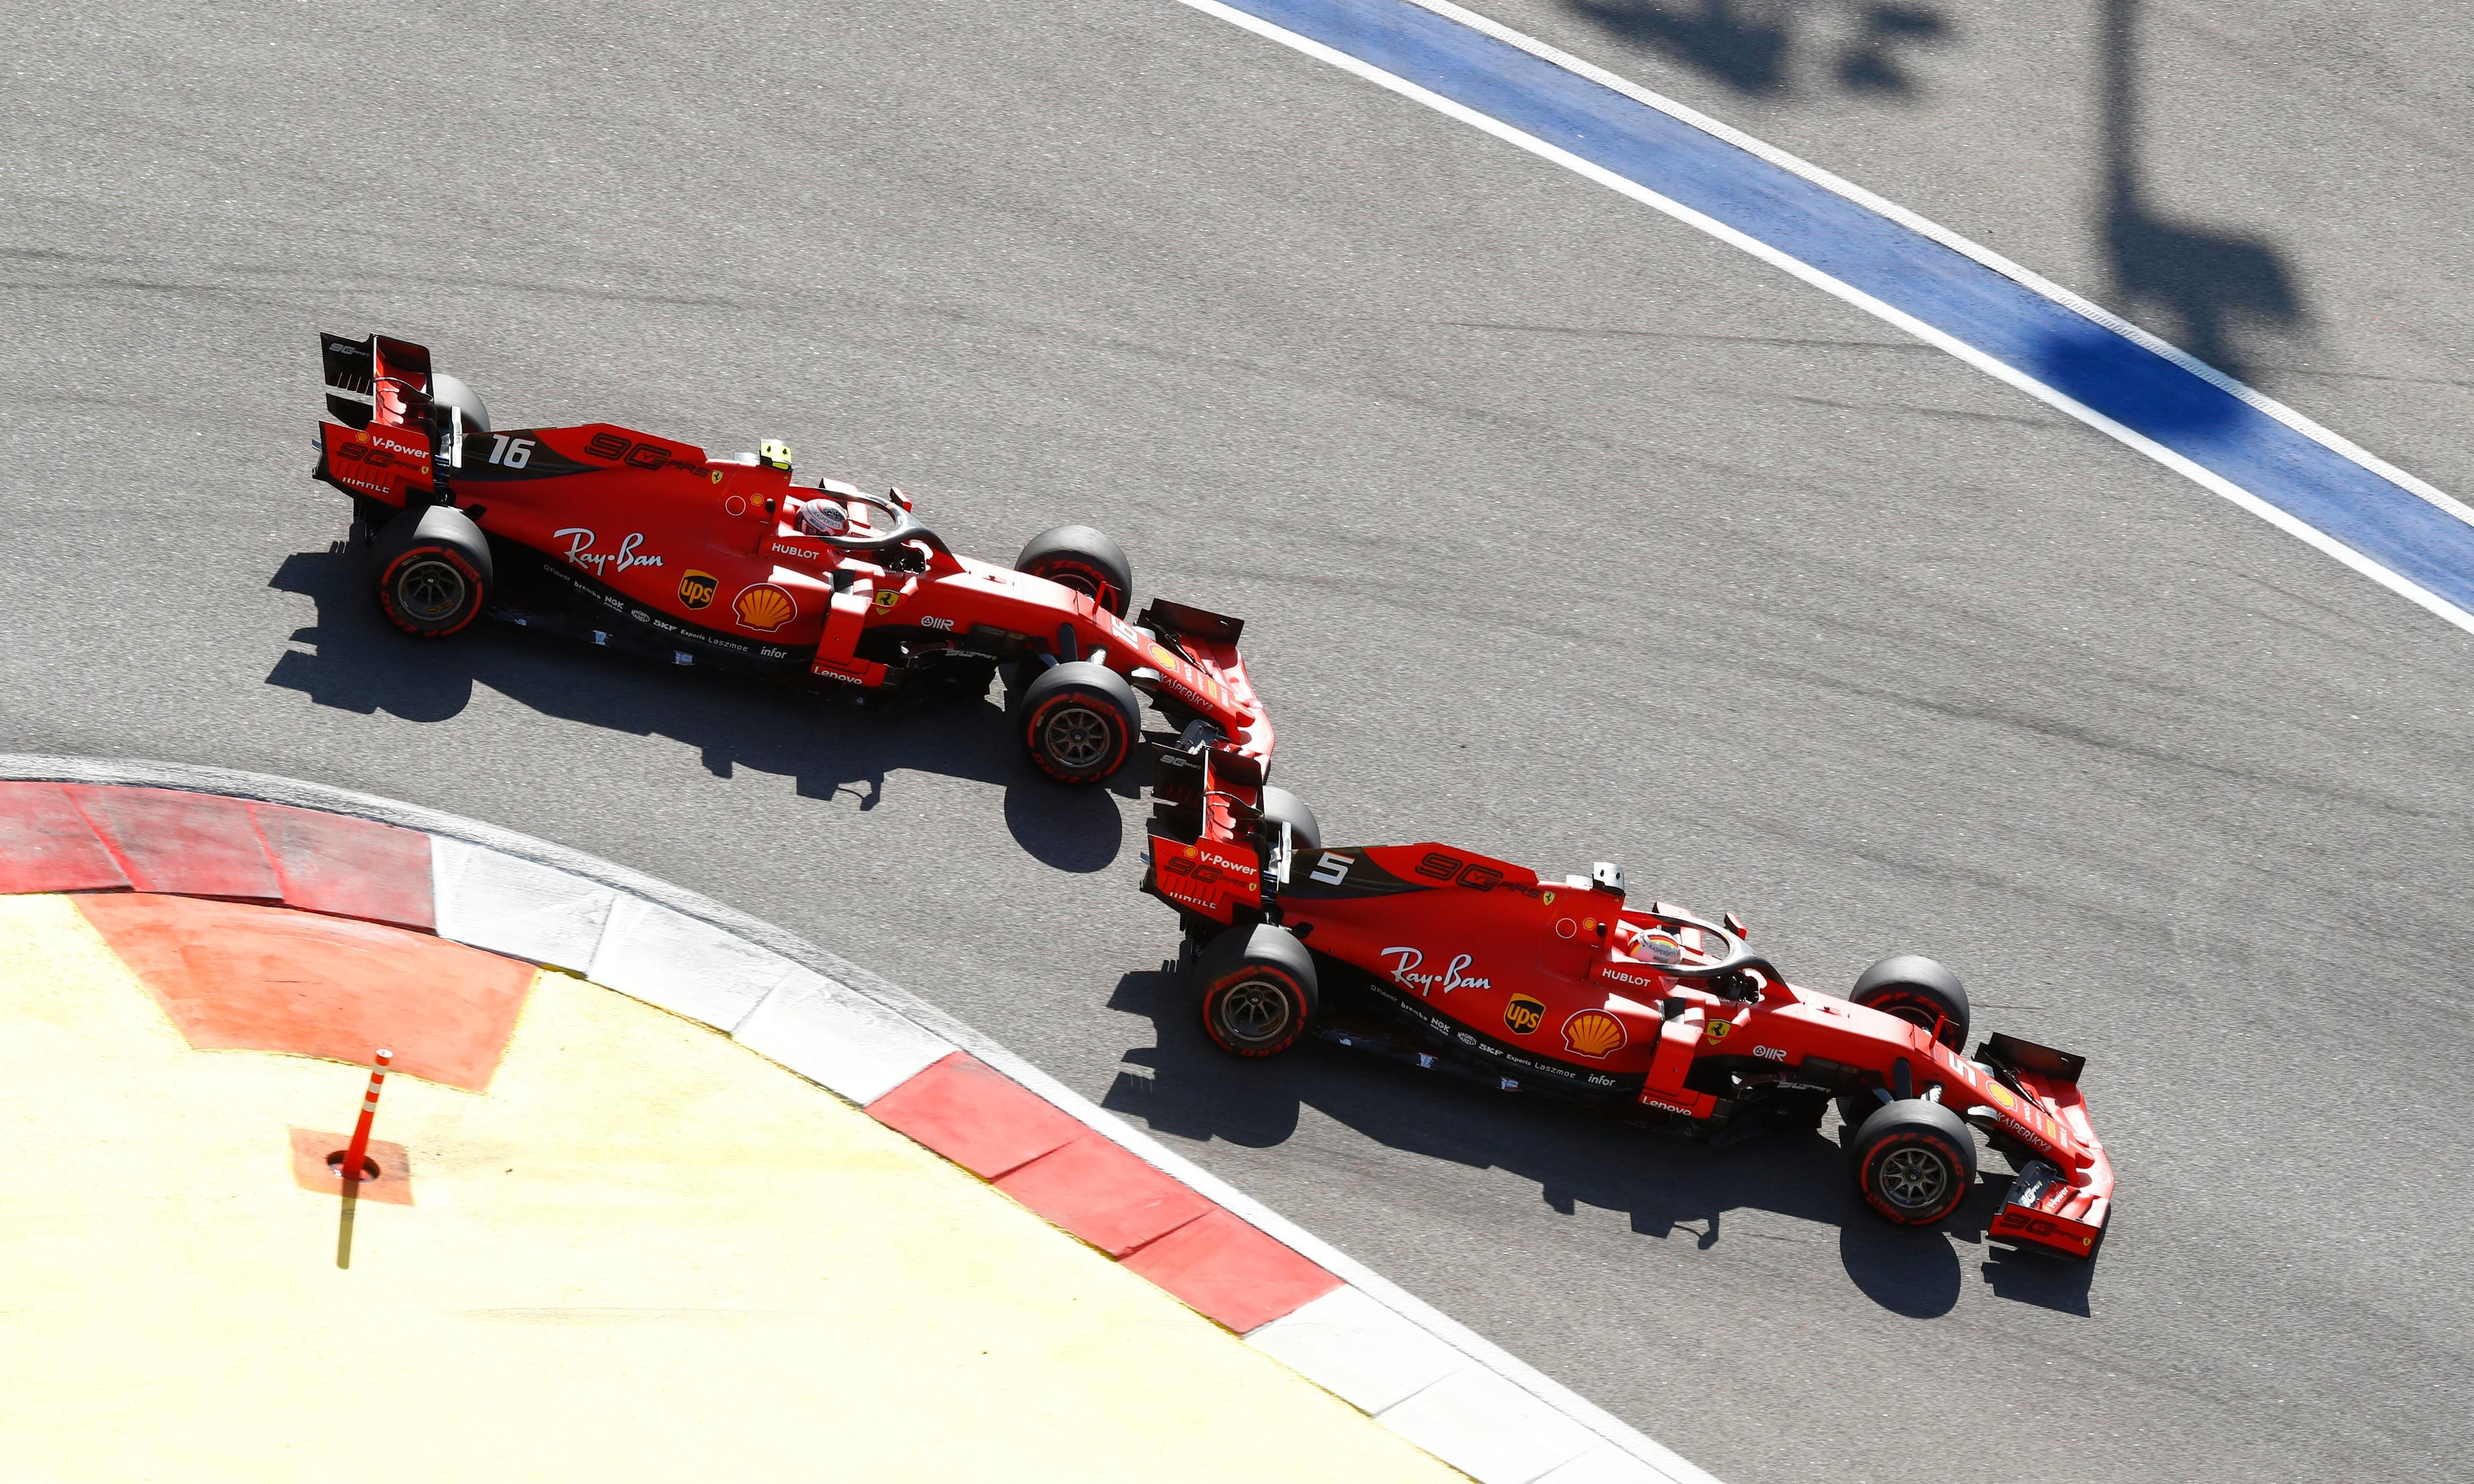 Ferrari create 'a war' while F1 continues to meddle with the rules